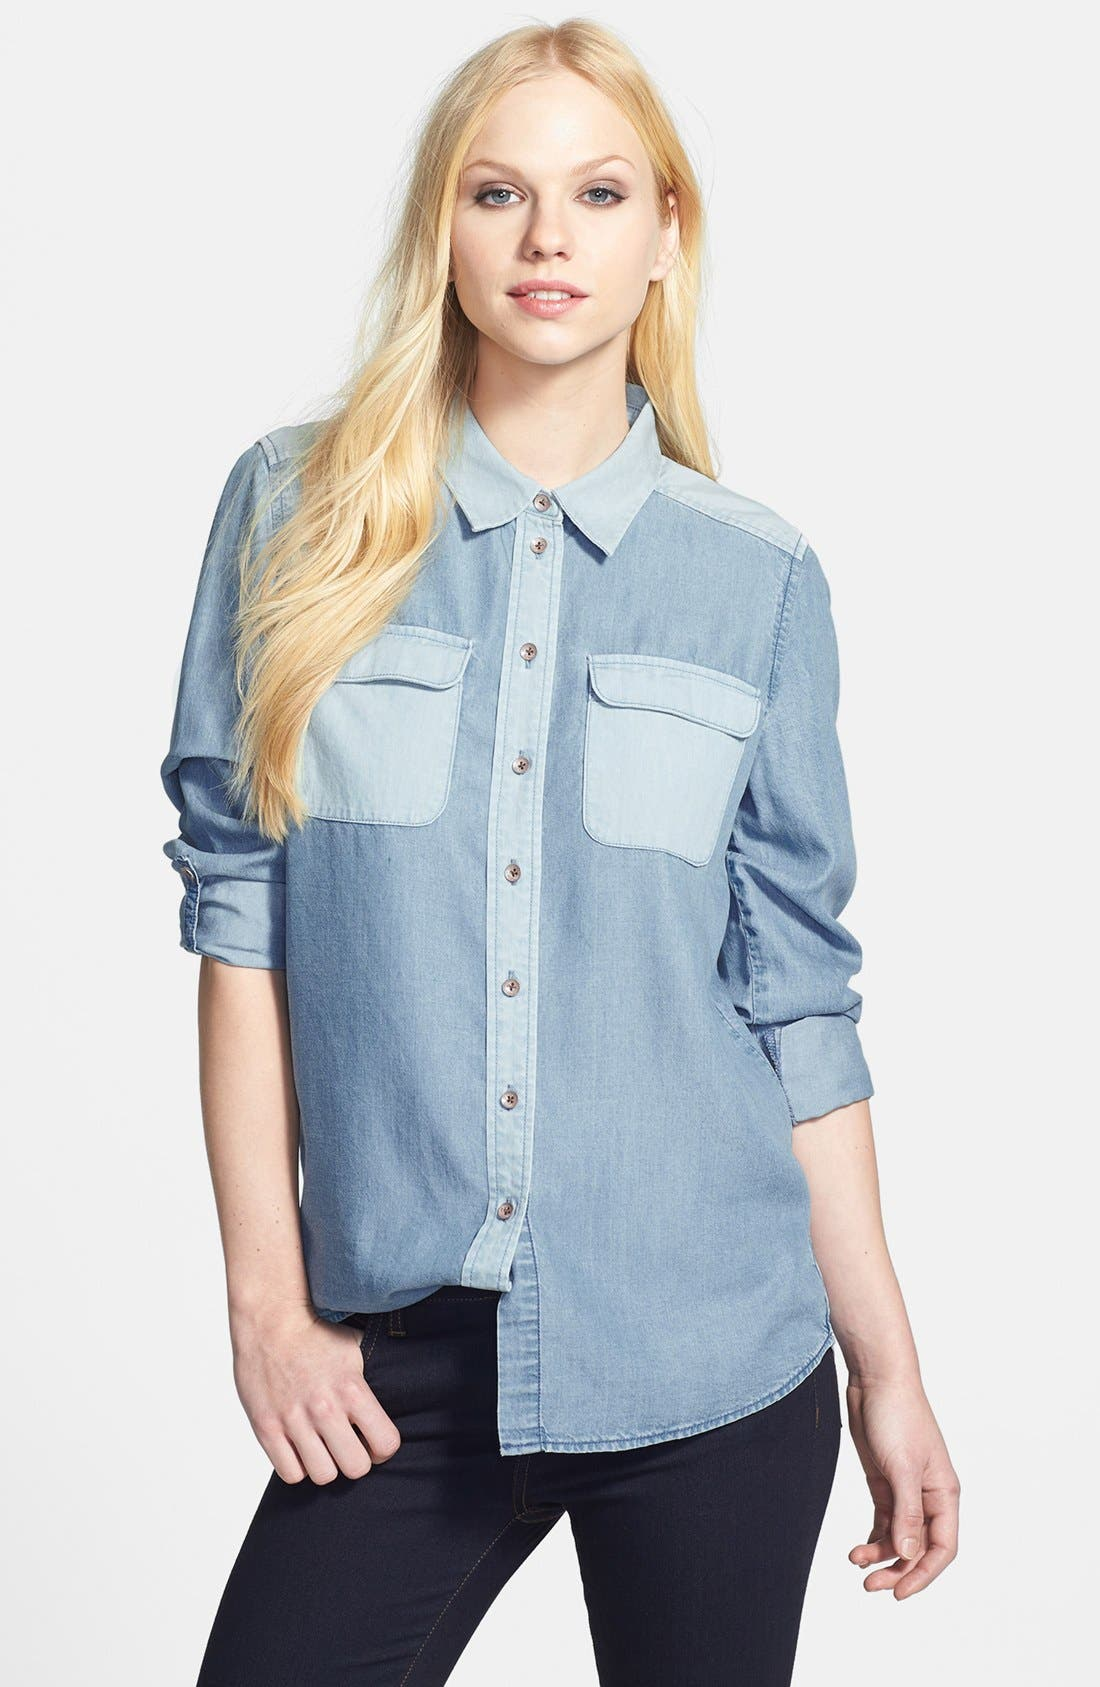 Alternate Image 1 Selected - Two by Vince Camuto Two-Tone Denim Utility Shirt